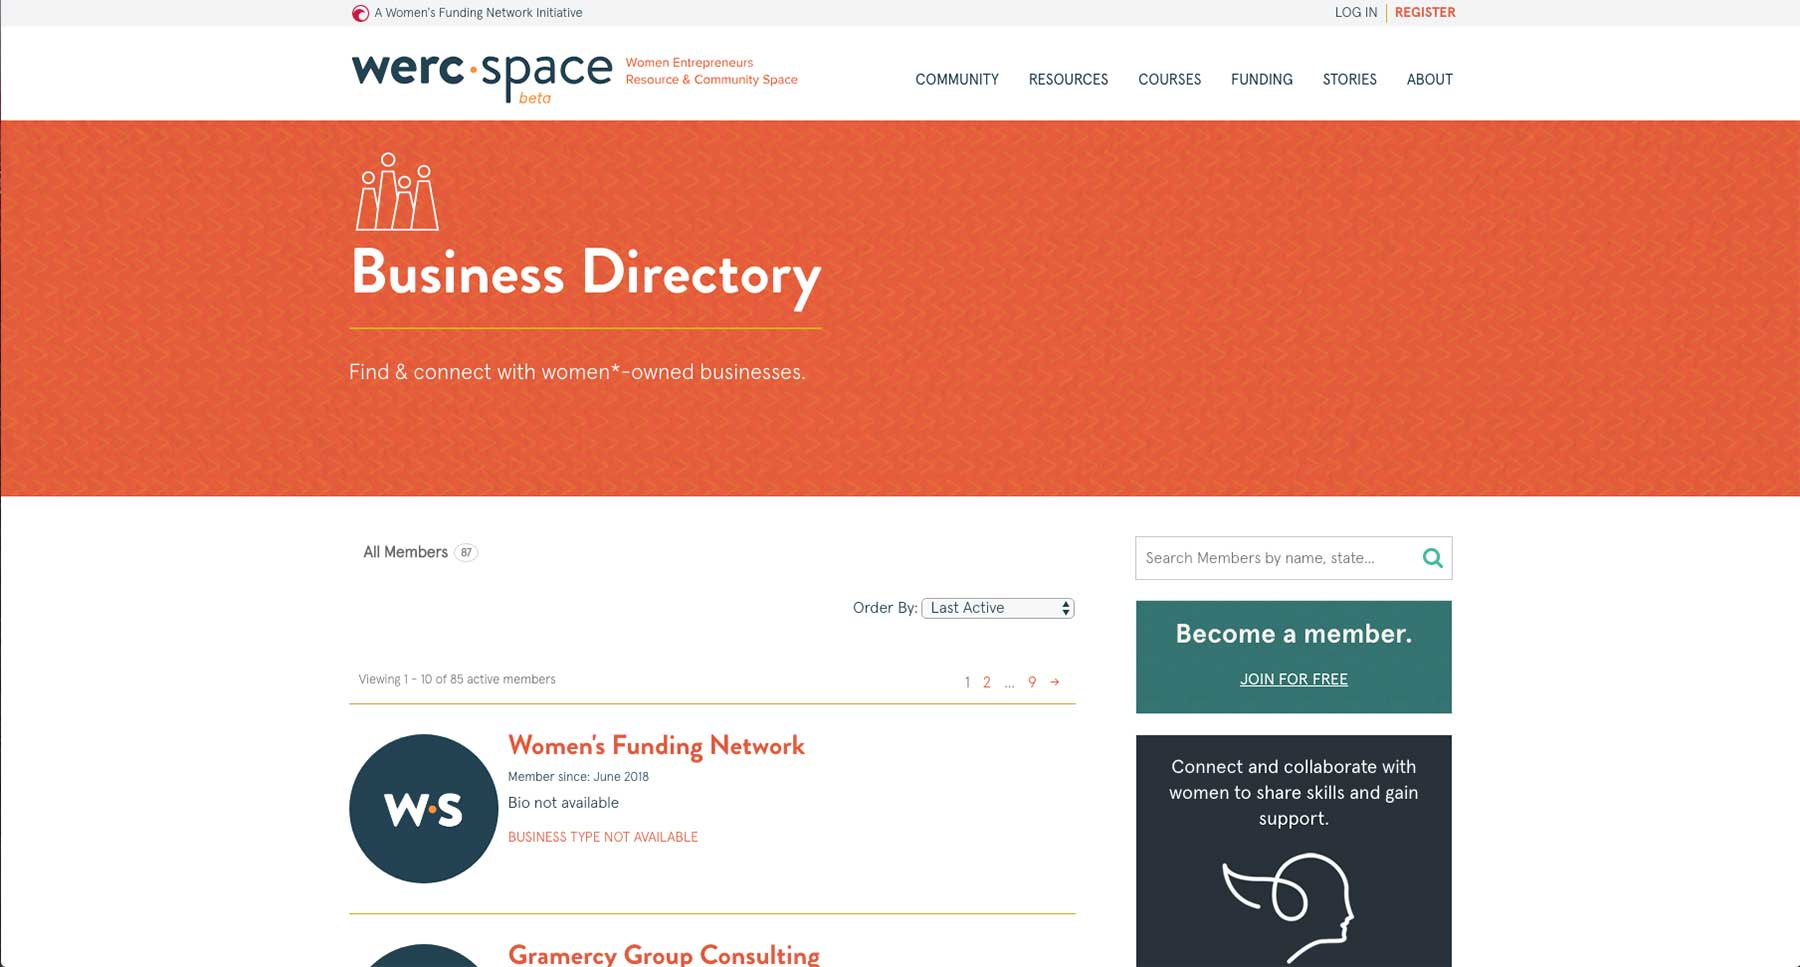 werc space - Business Directory